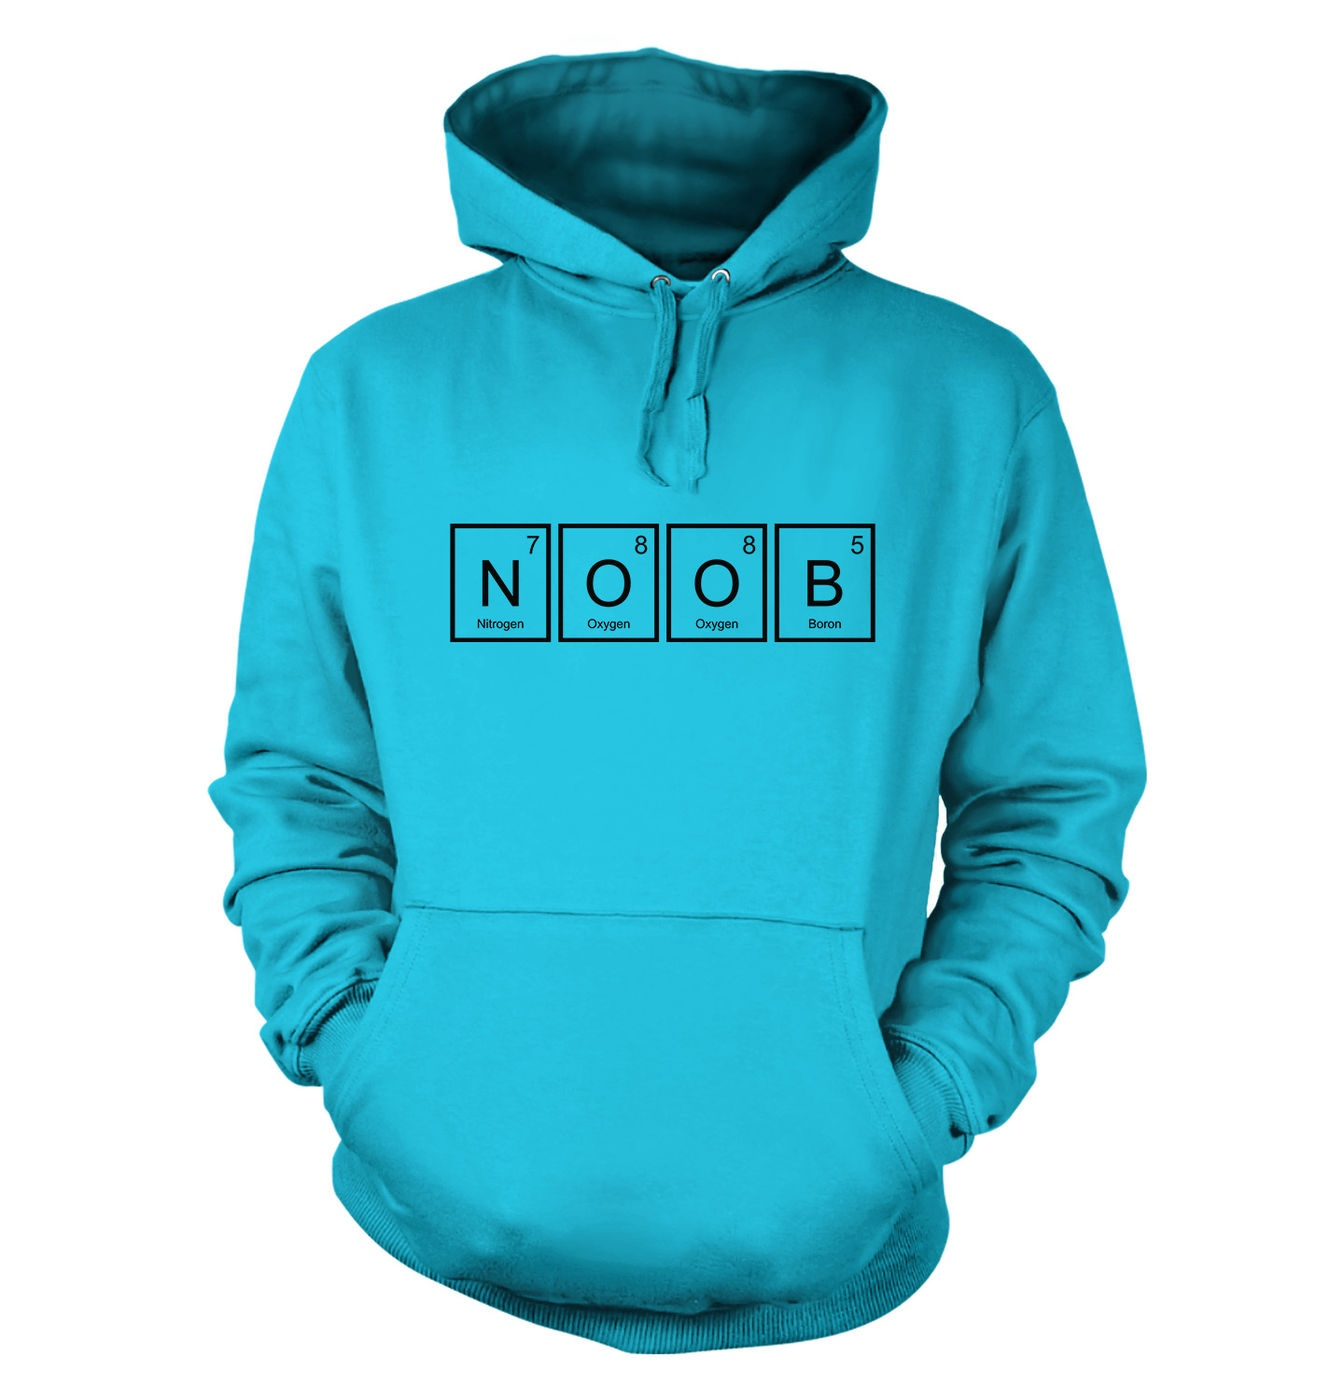 The Element of Noob adult hoodie